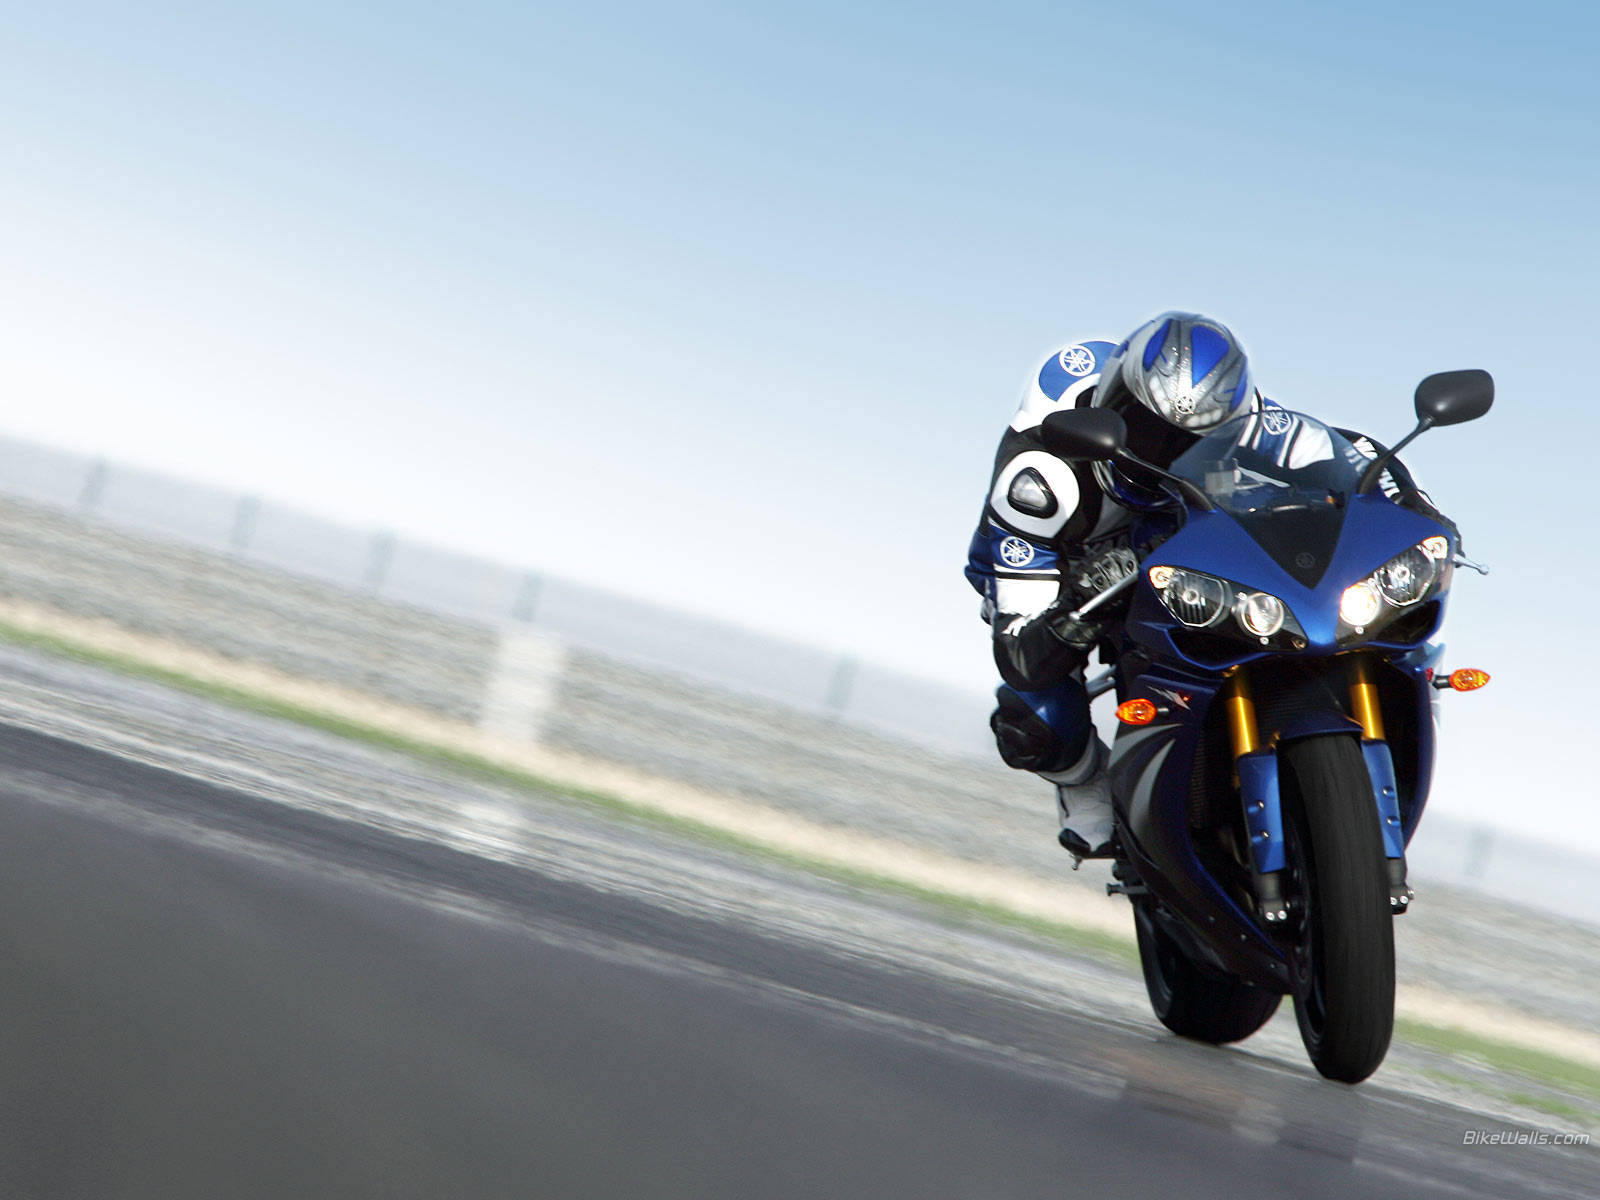 HD Yamaha Wallpaper Background Images For Download 1600x1200